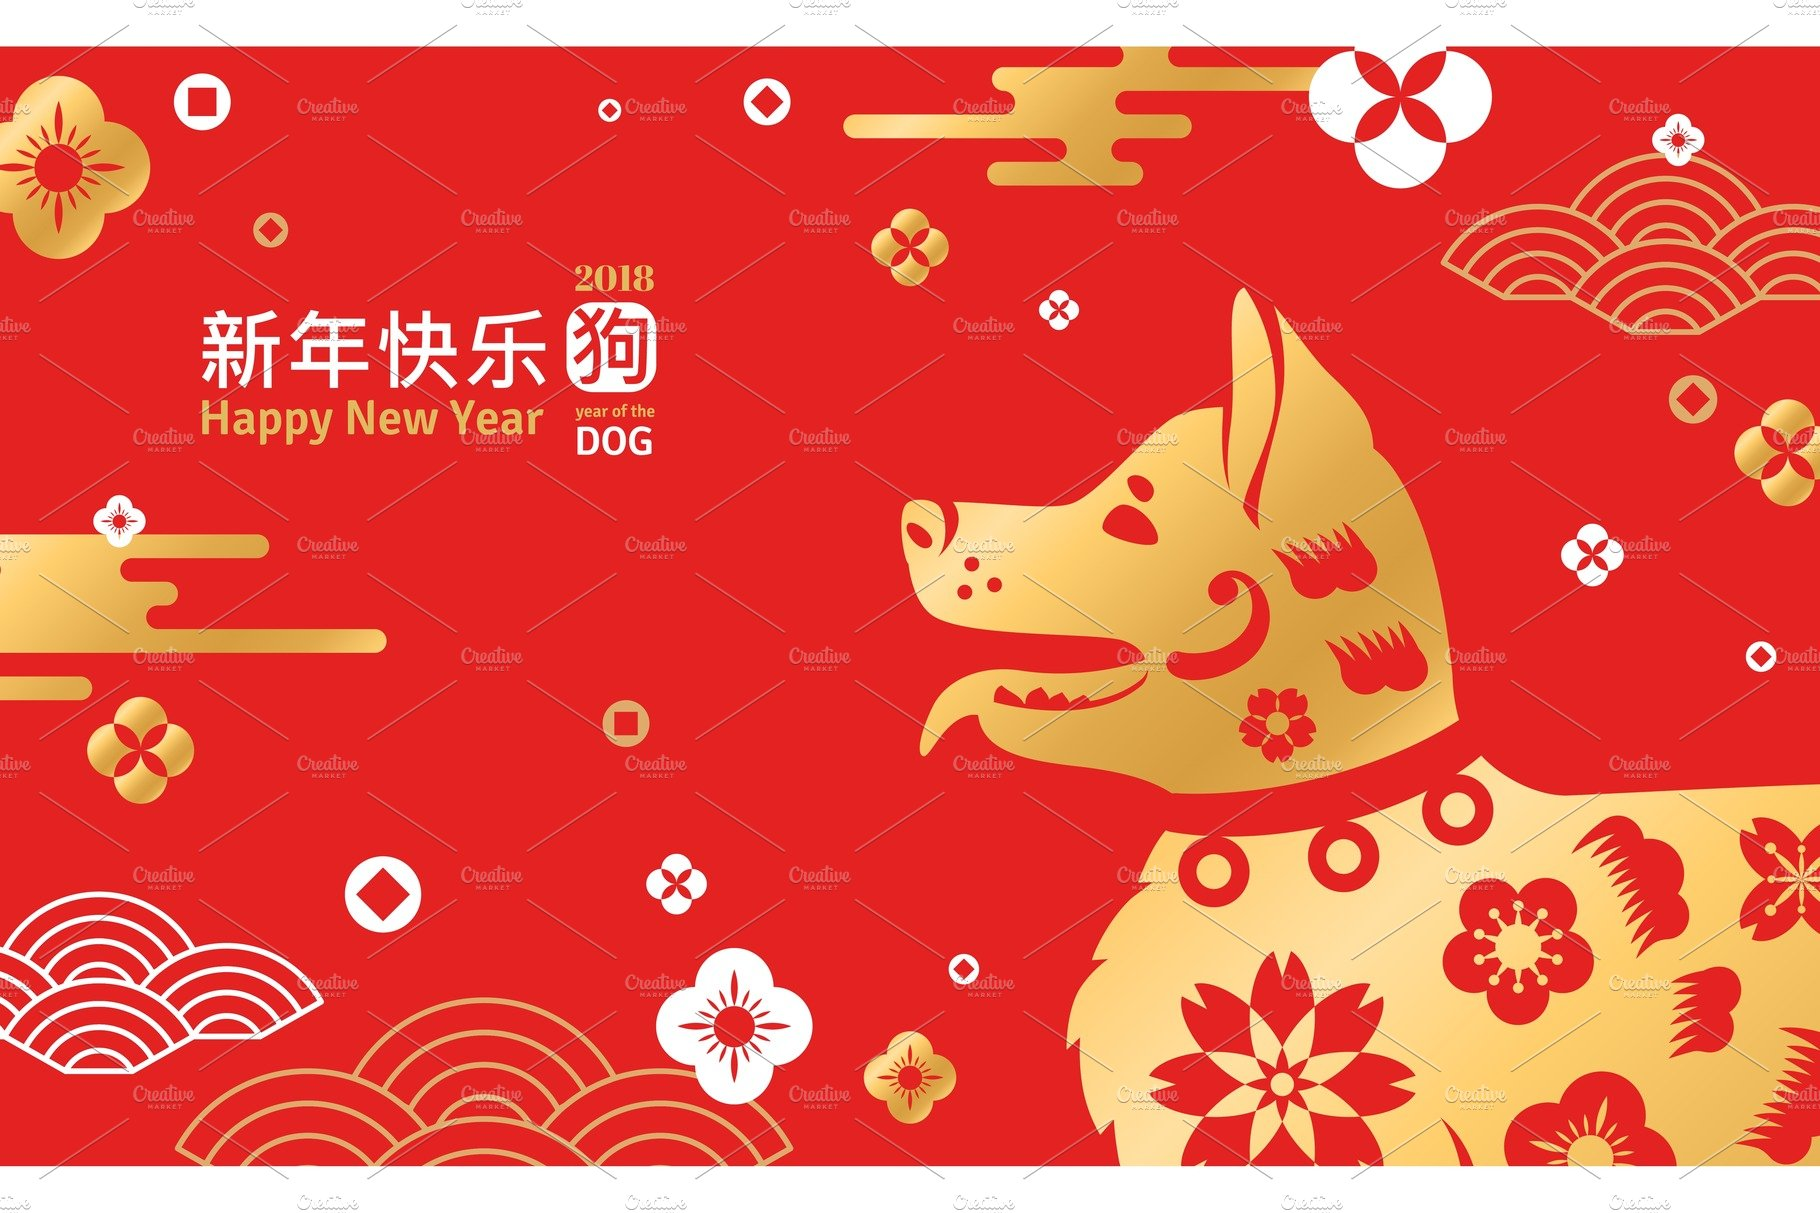 2018 Chinese New Year Greeting Card Illustrations Creative Market